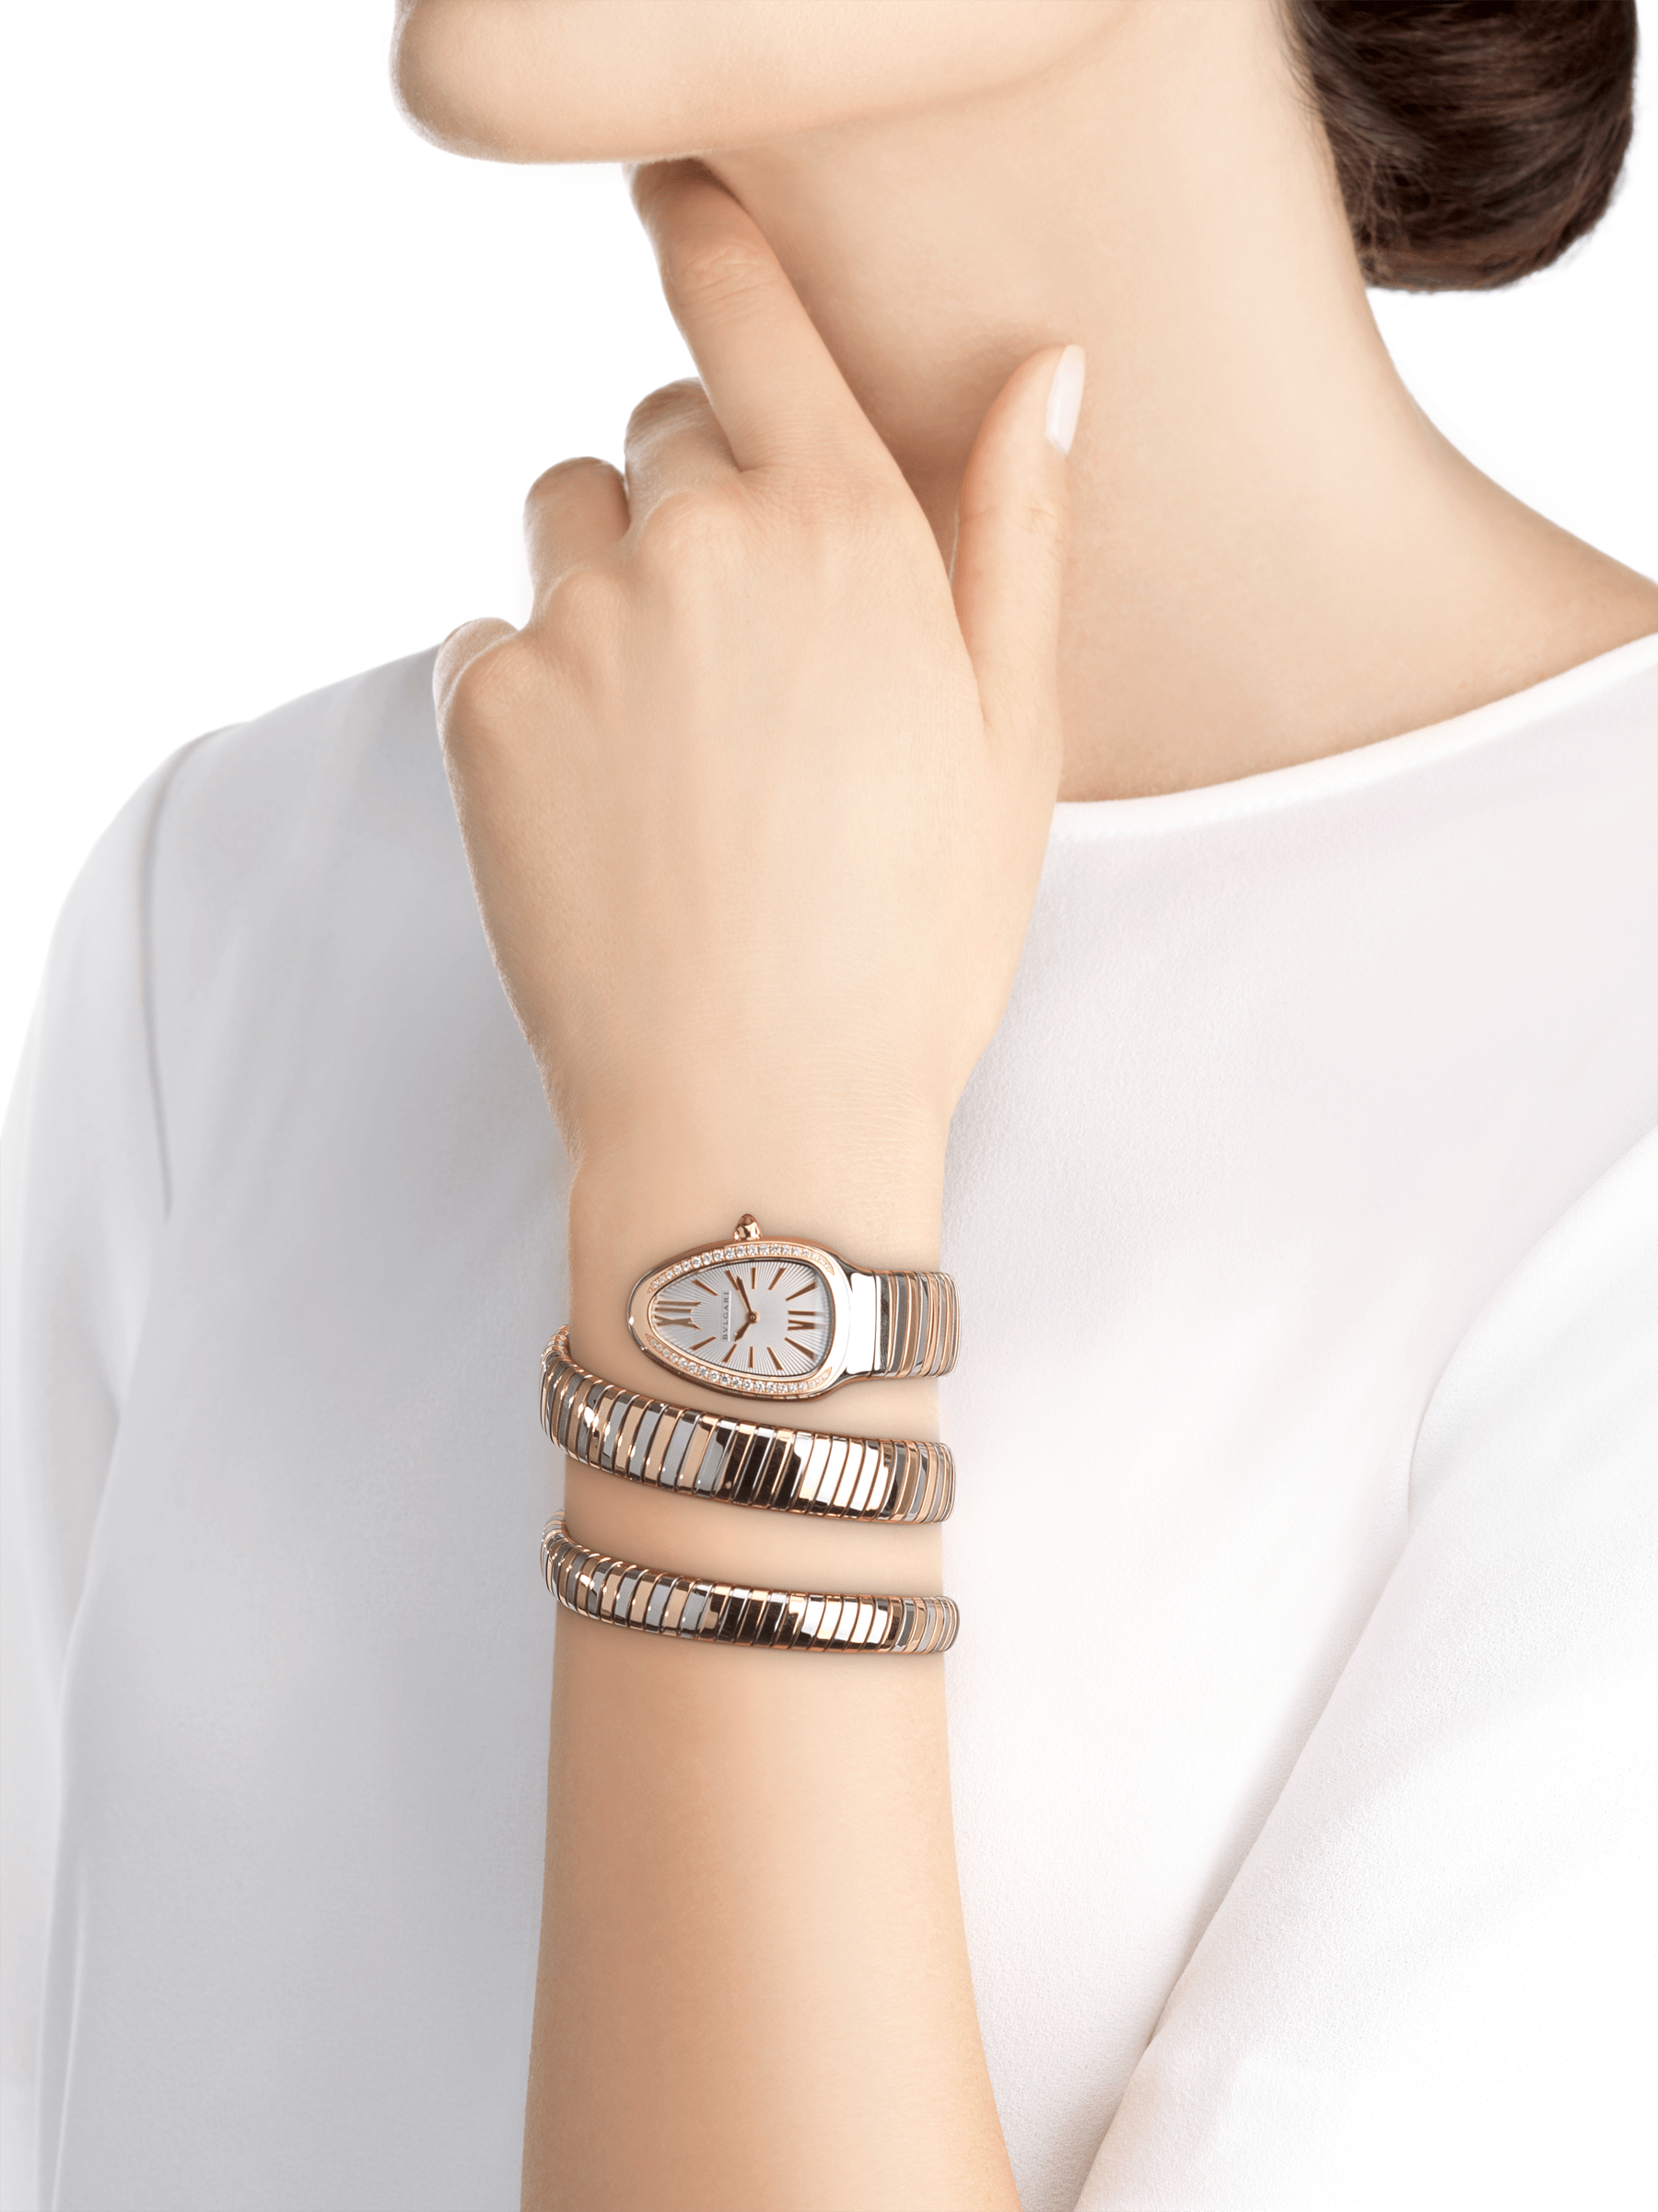 Serpenti Tubogas double spiral watch with stainless steel case, 18 kt rose gold bezel set with diamonds, silver opaline dial with guilloché soleil treatment, stainless steel and 18 kt rose gold bracelet 103149 image 4